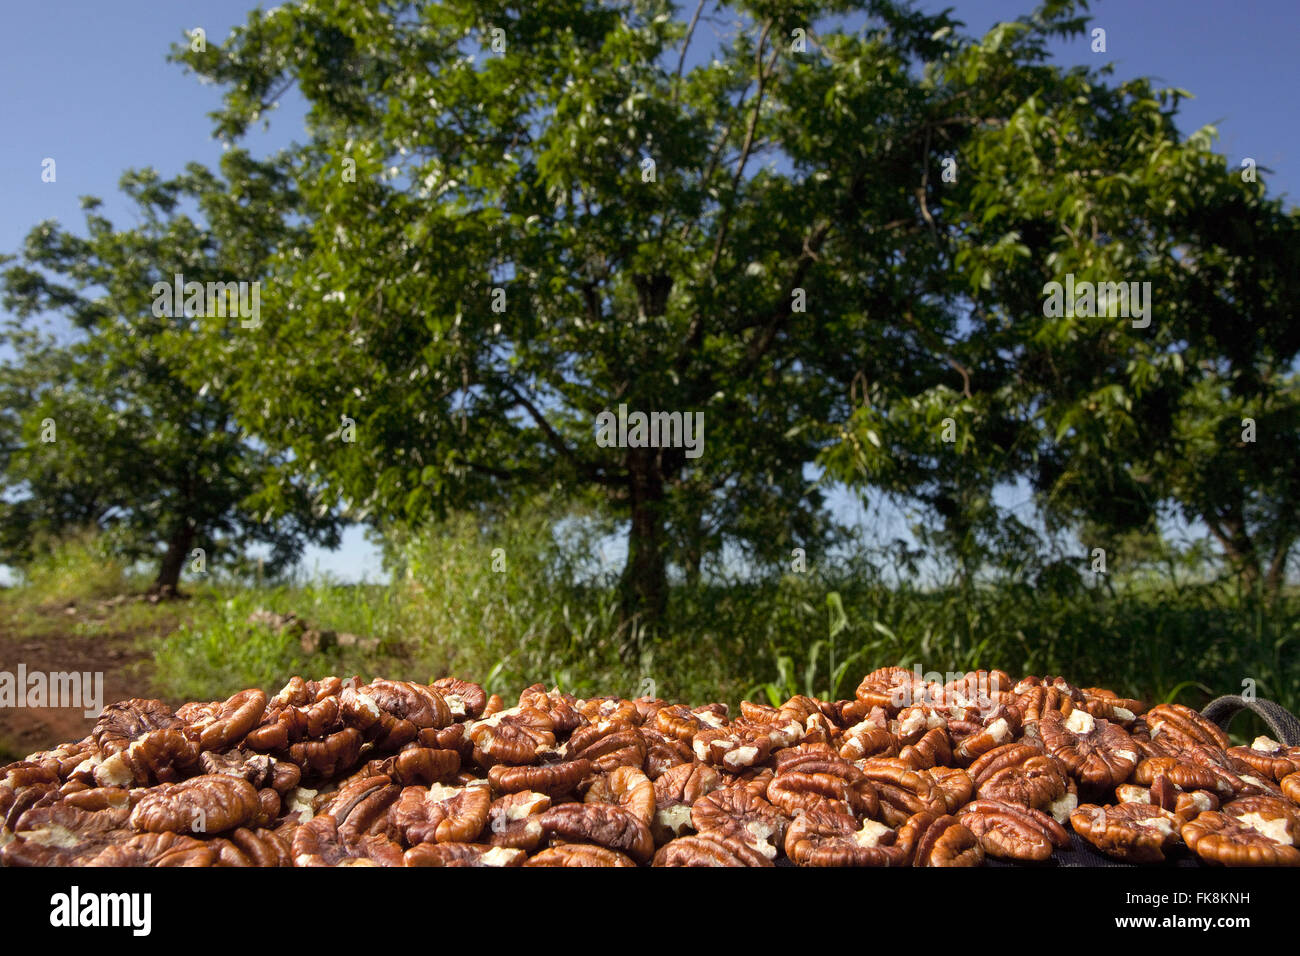 Hickory and pecan nuts sins or to commercialization - Stock Image